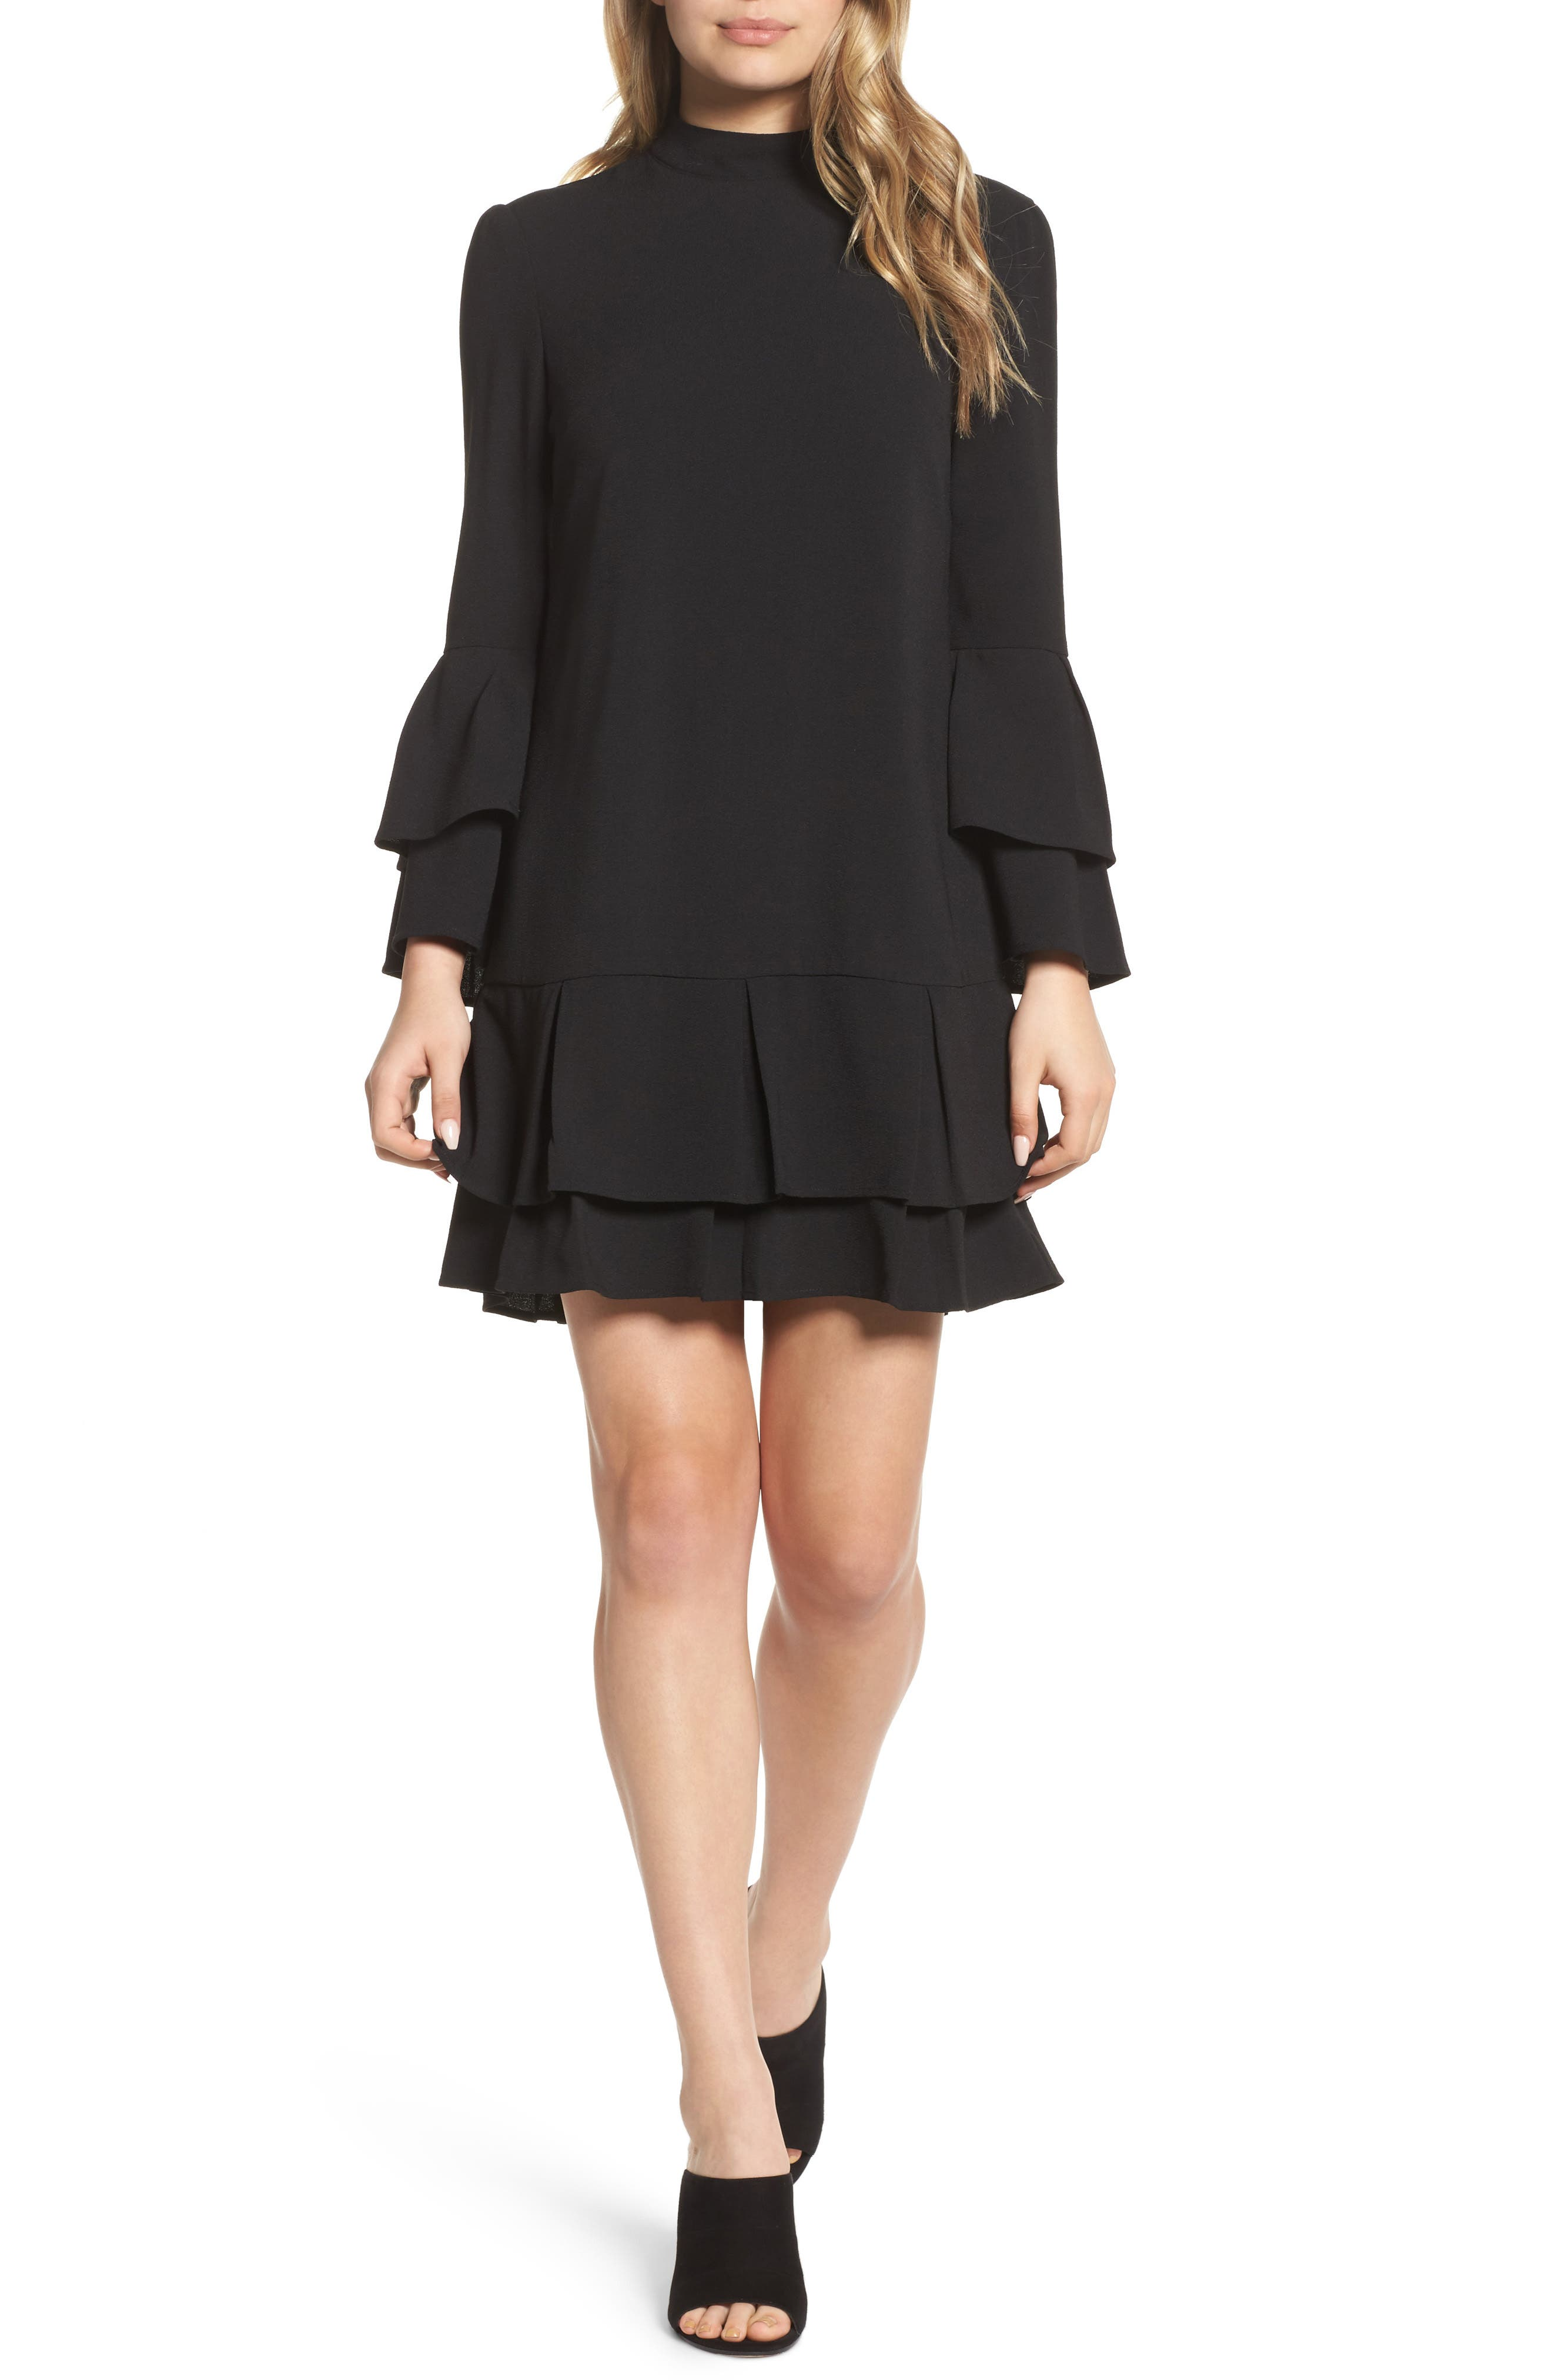 Tiered Sleeve Shift Dress,                             Main thumbnail 1, color,                             Black